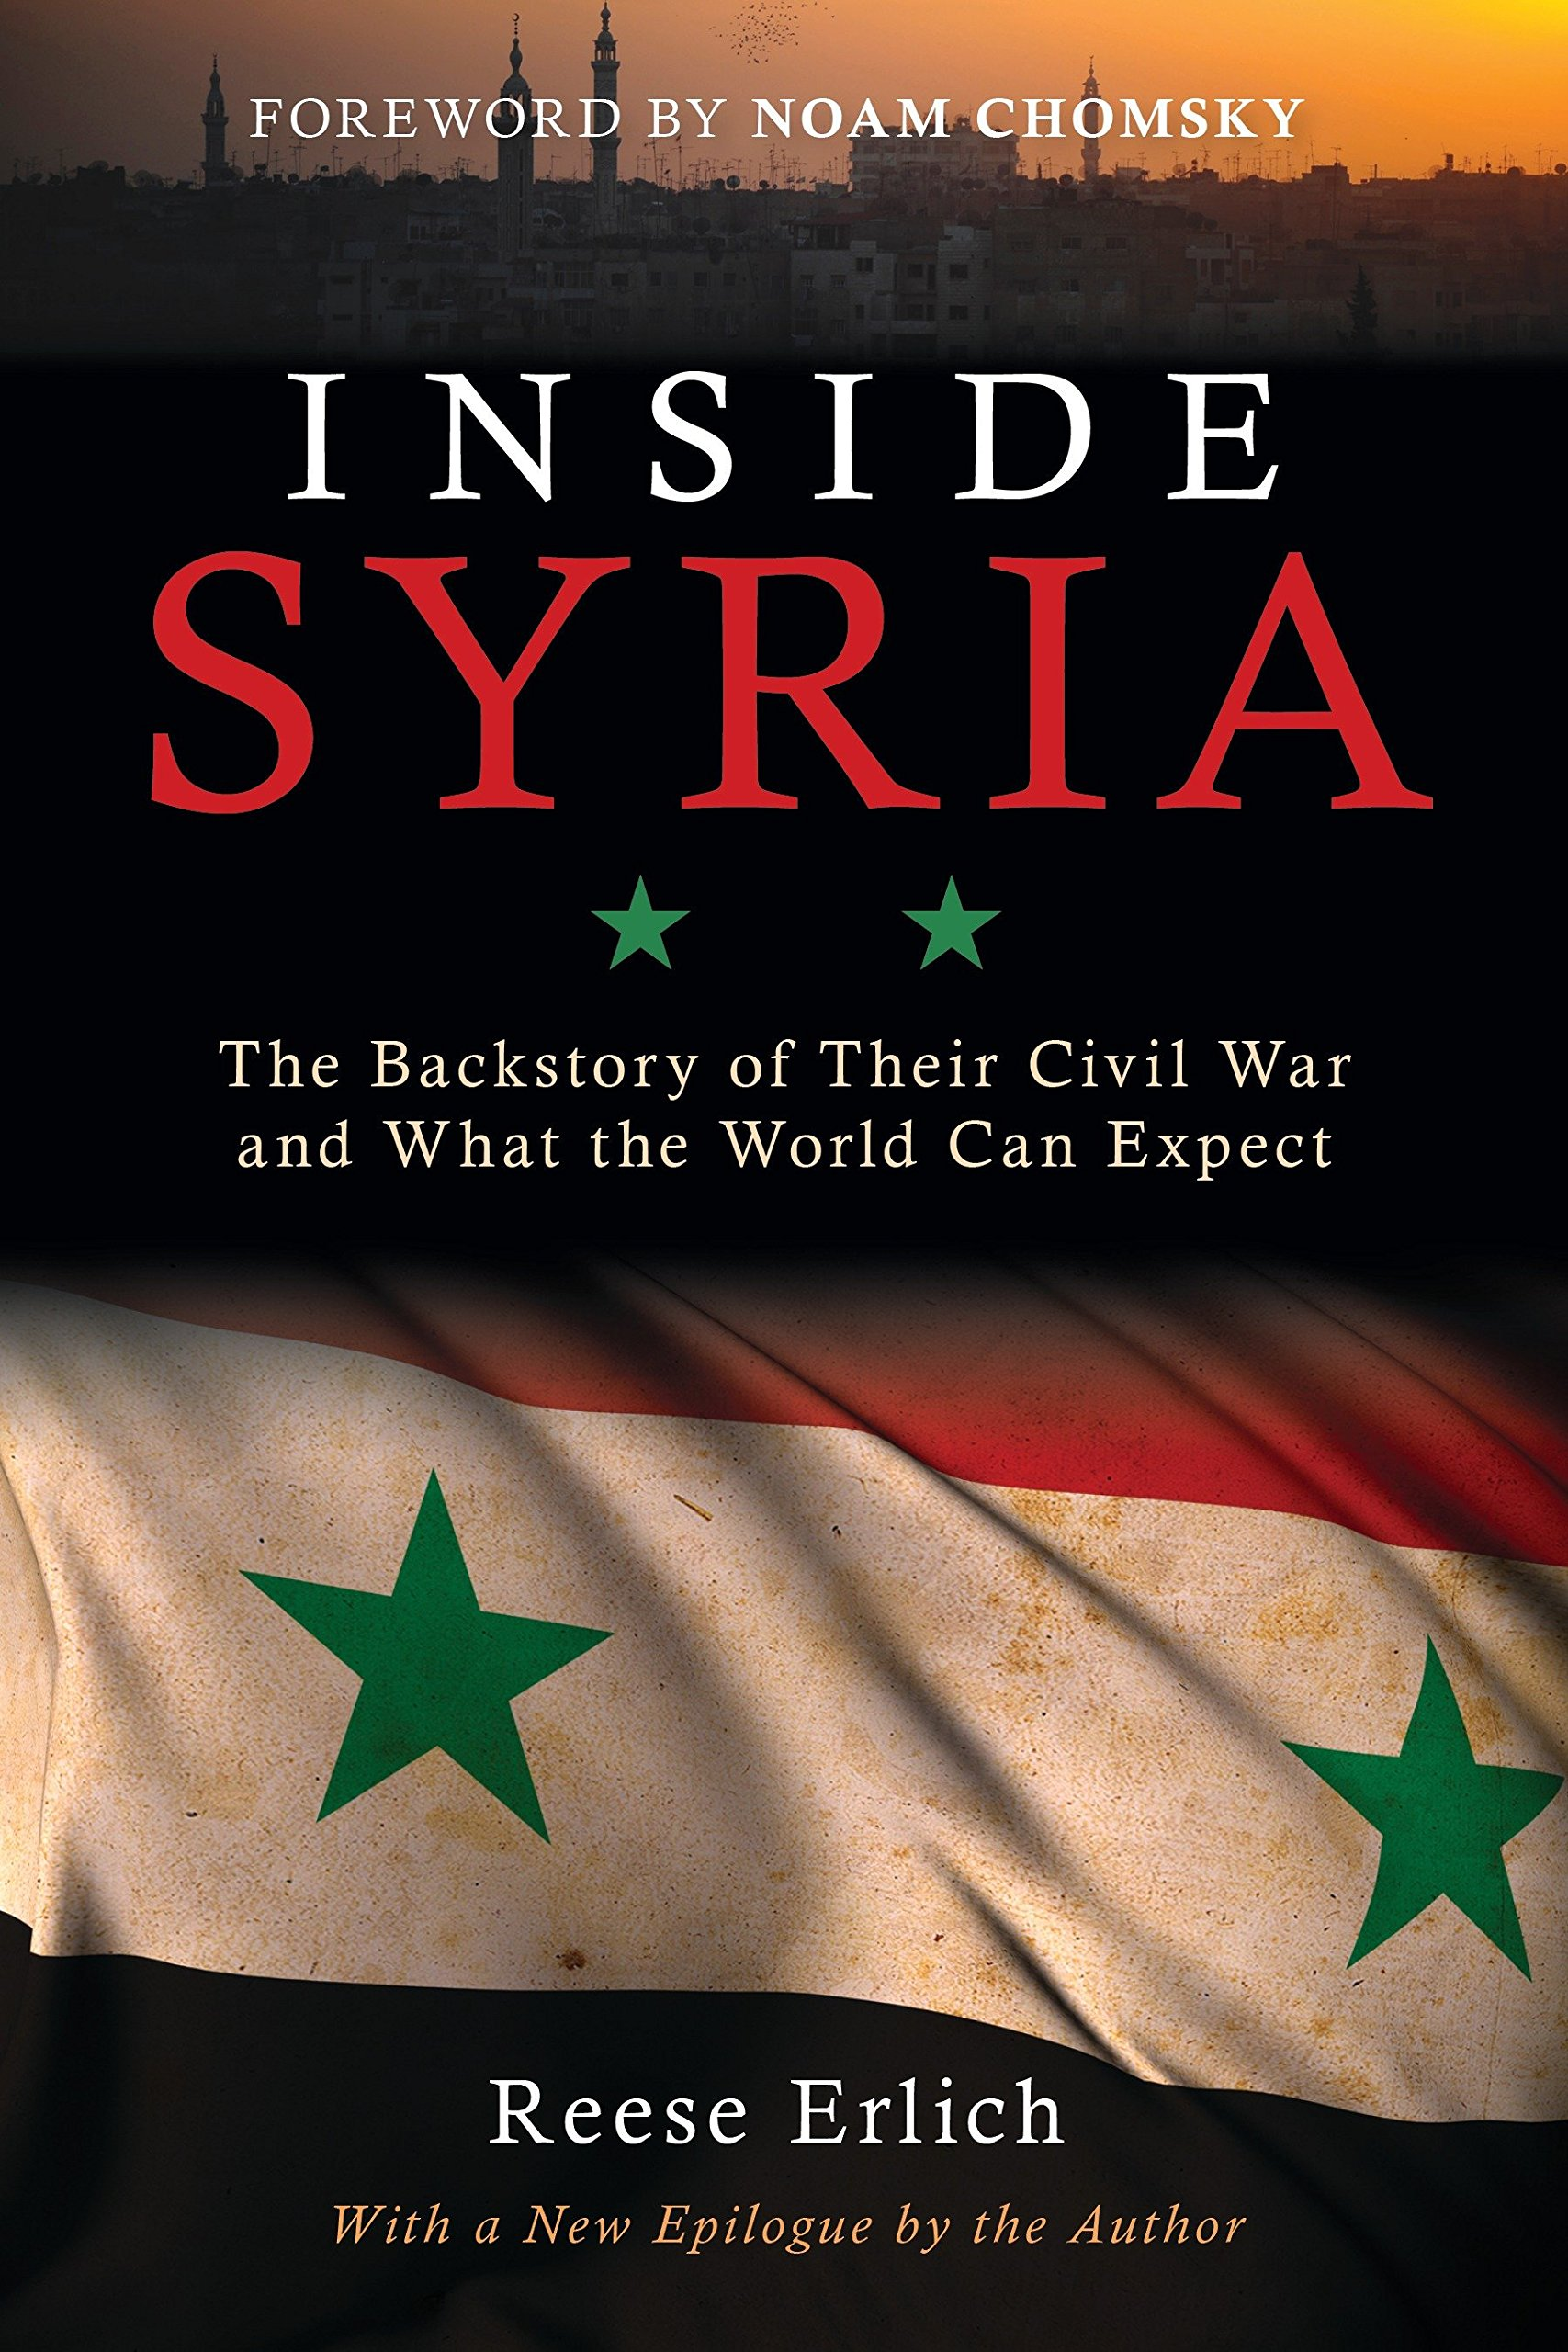 Inside Syria: The Backstory of Their Civil War and What the World Can Expect PDF